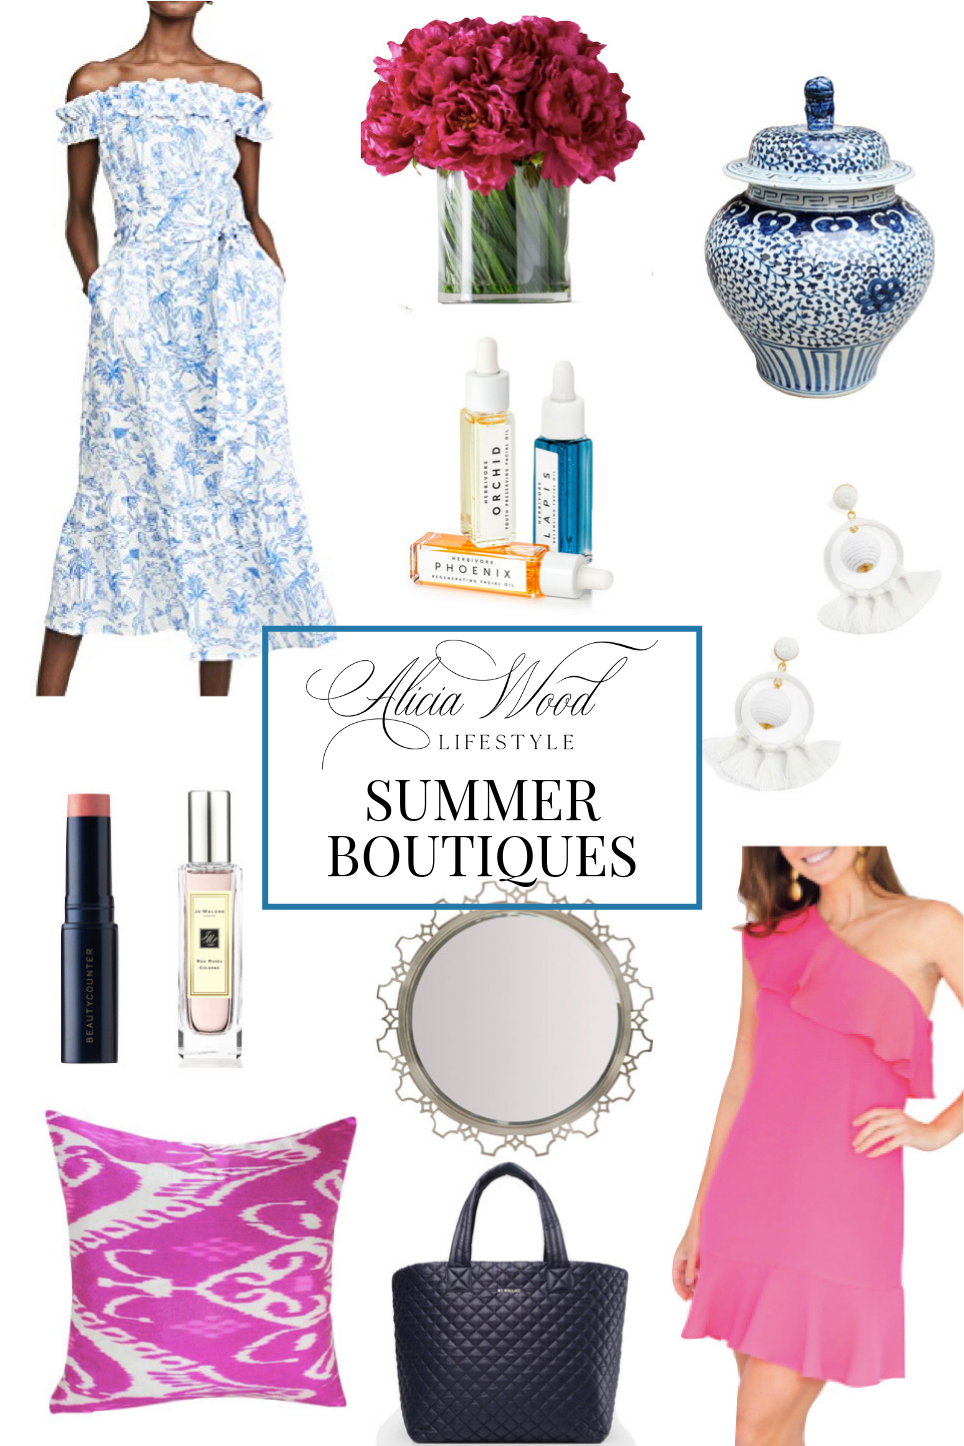 Alicia Wood Lifestyle Summer Boutiques